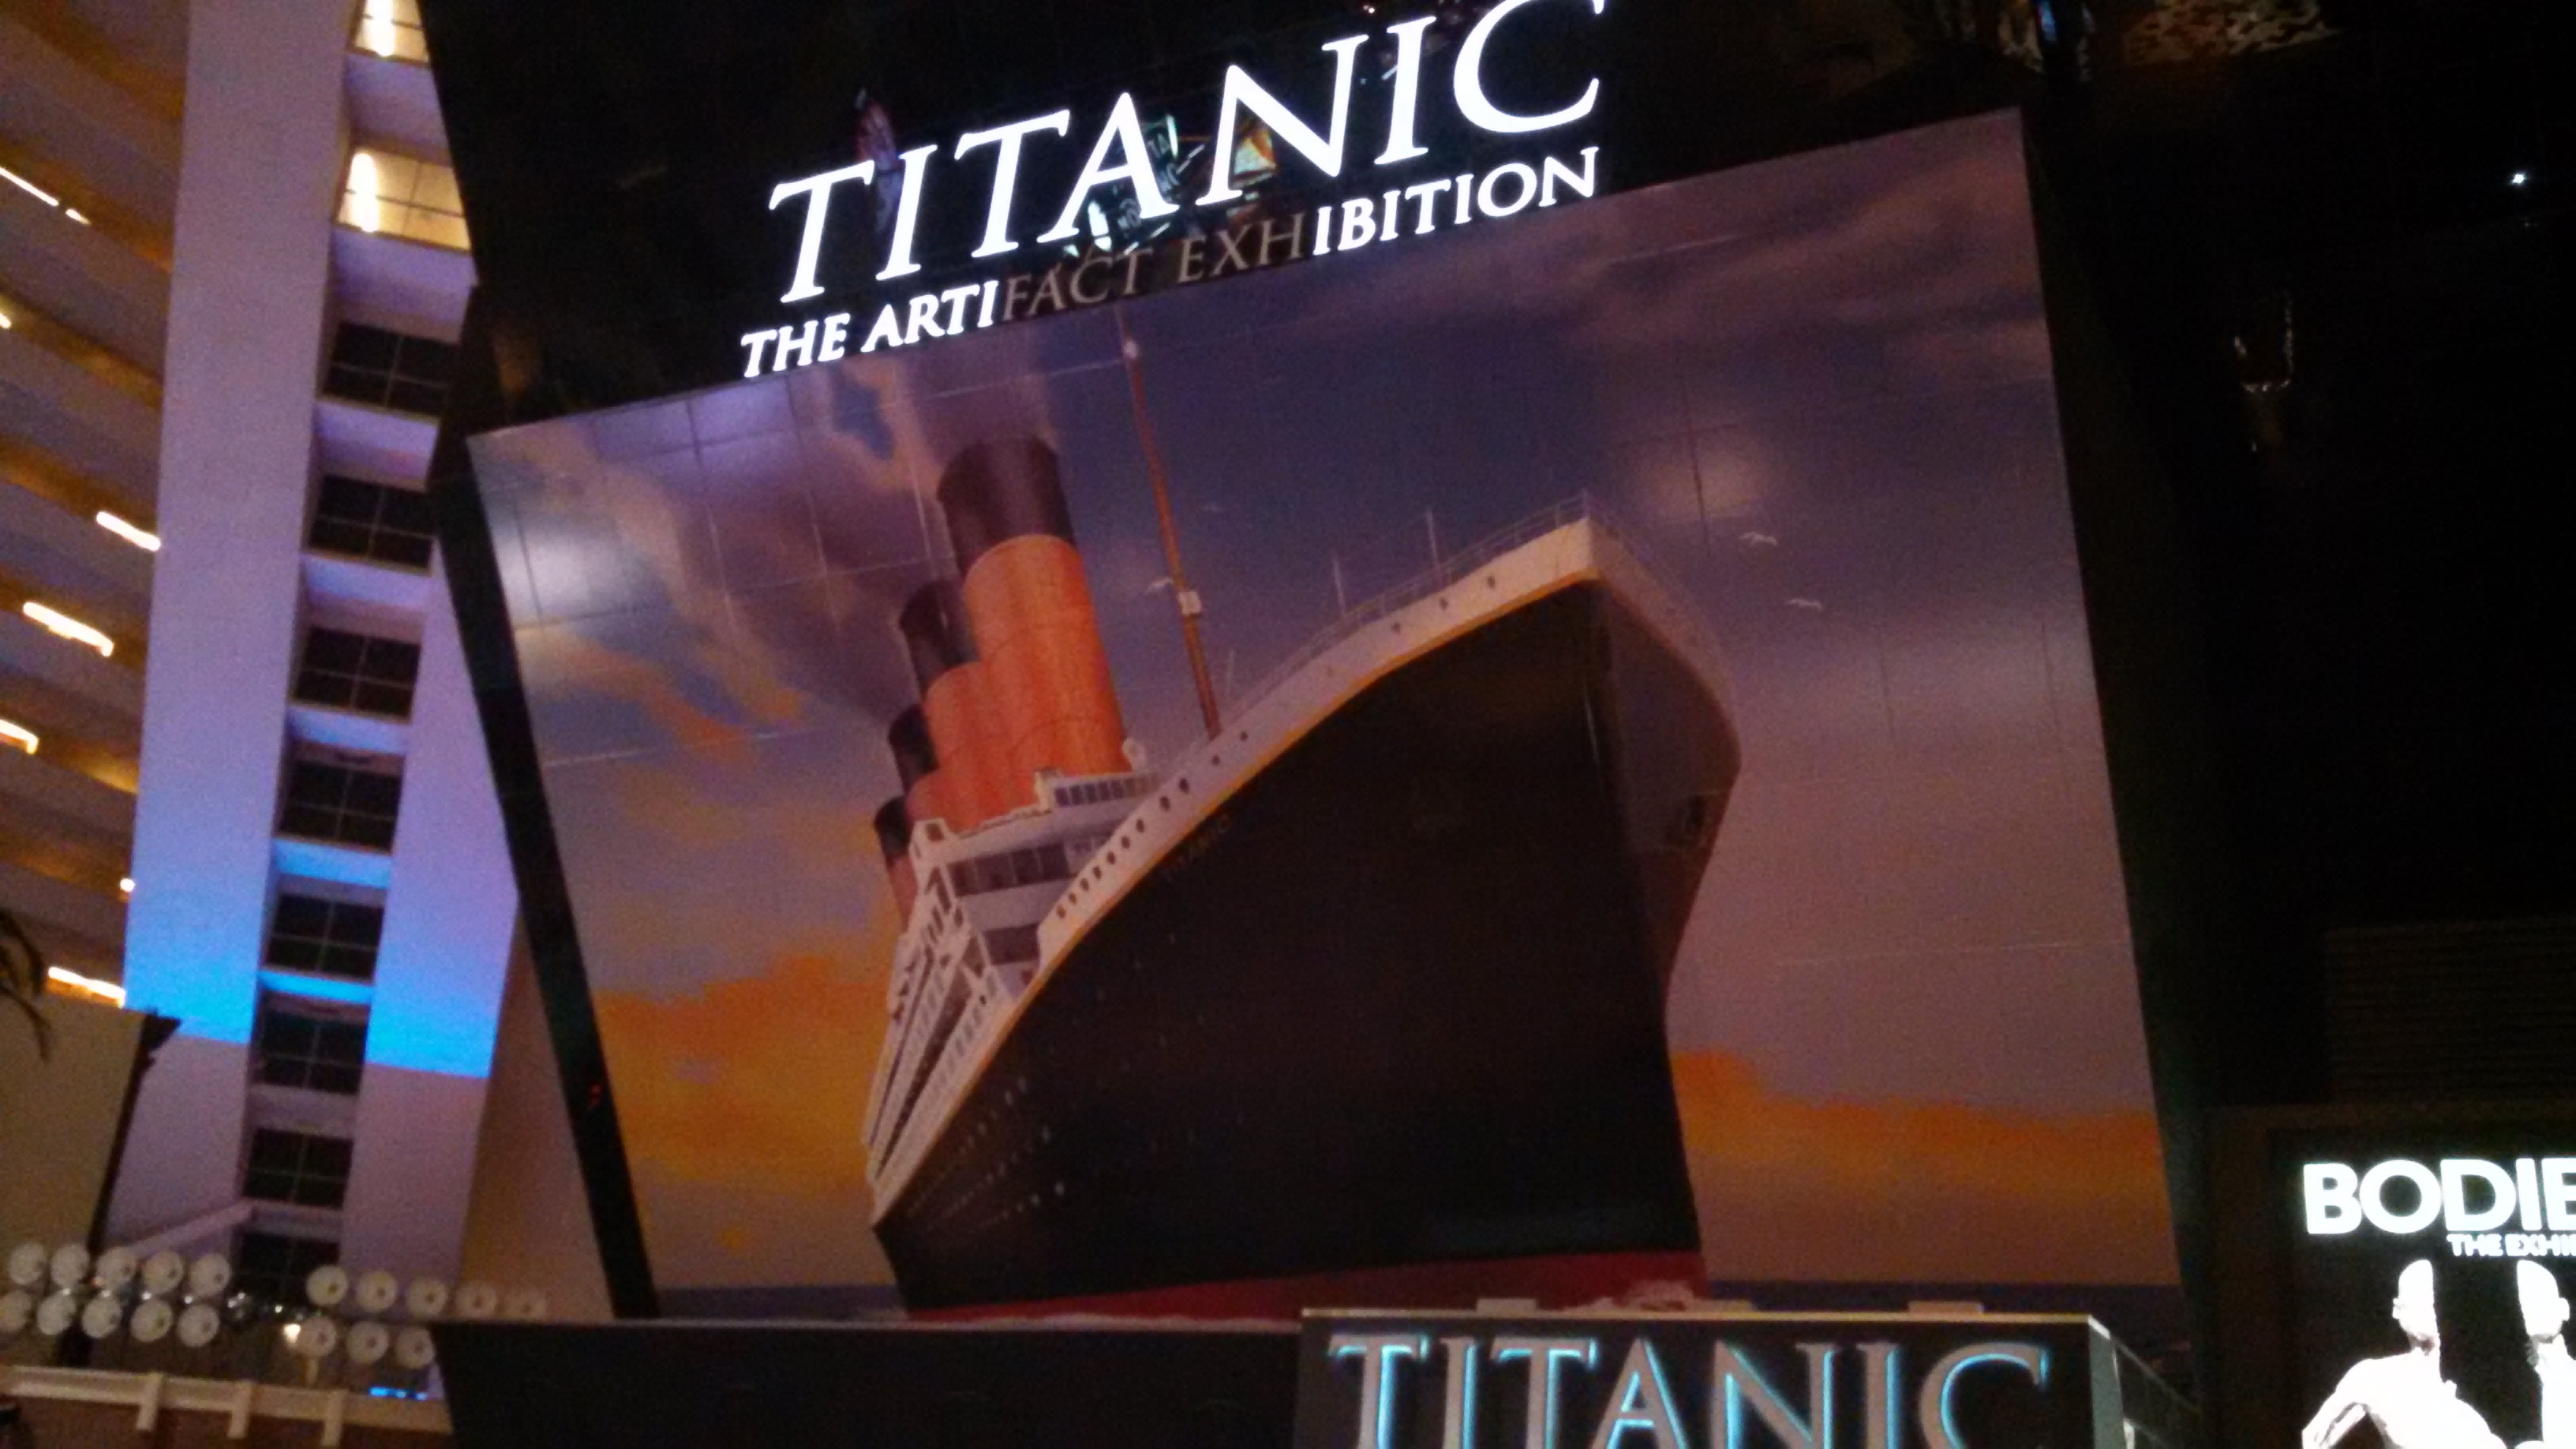 Titanic: The Artifact Exhibition - Luxor